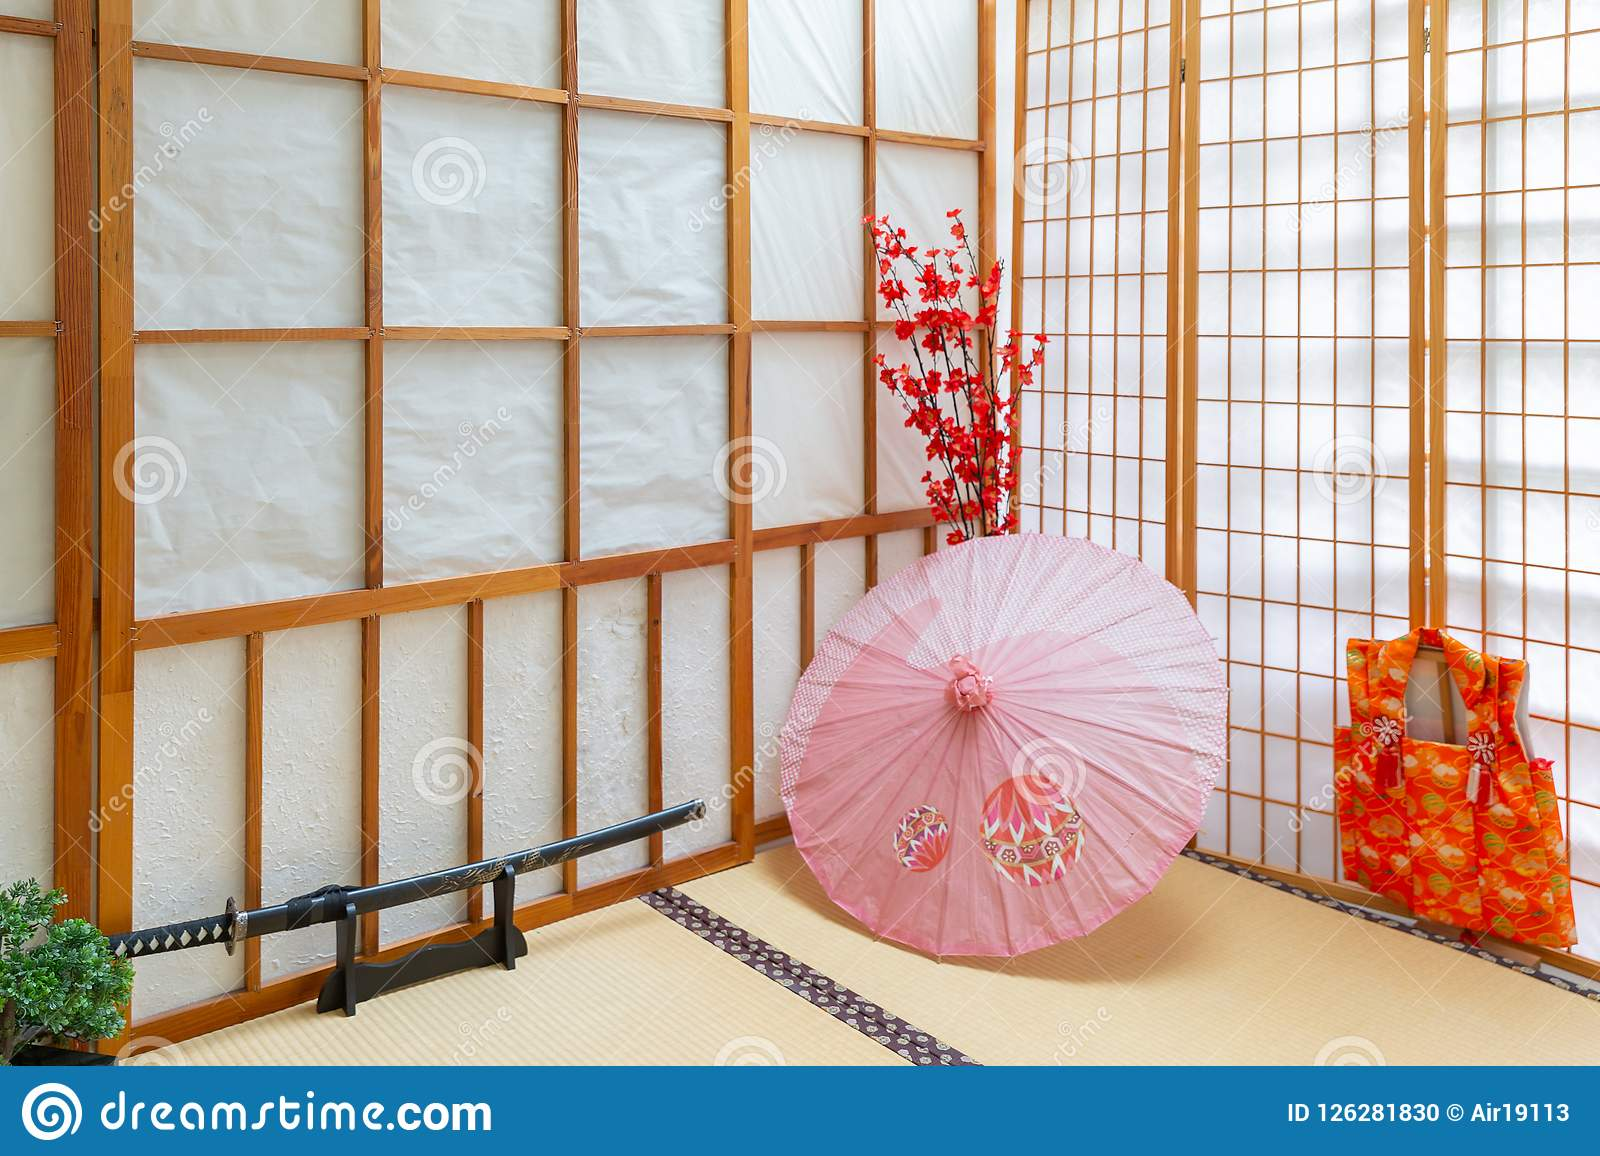 16 982 Japanese Backdrop Photos Free Royalty Free Stock Photos From Dreamstime